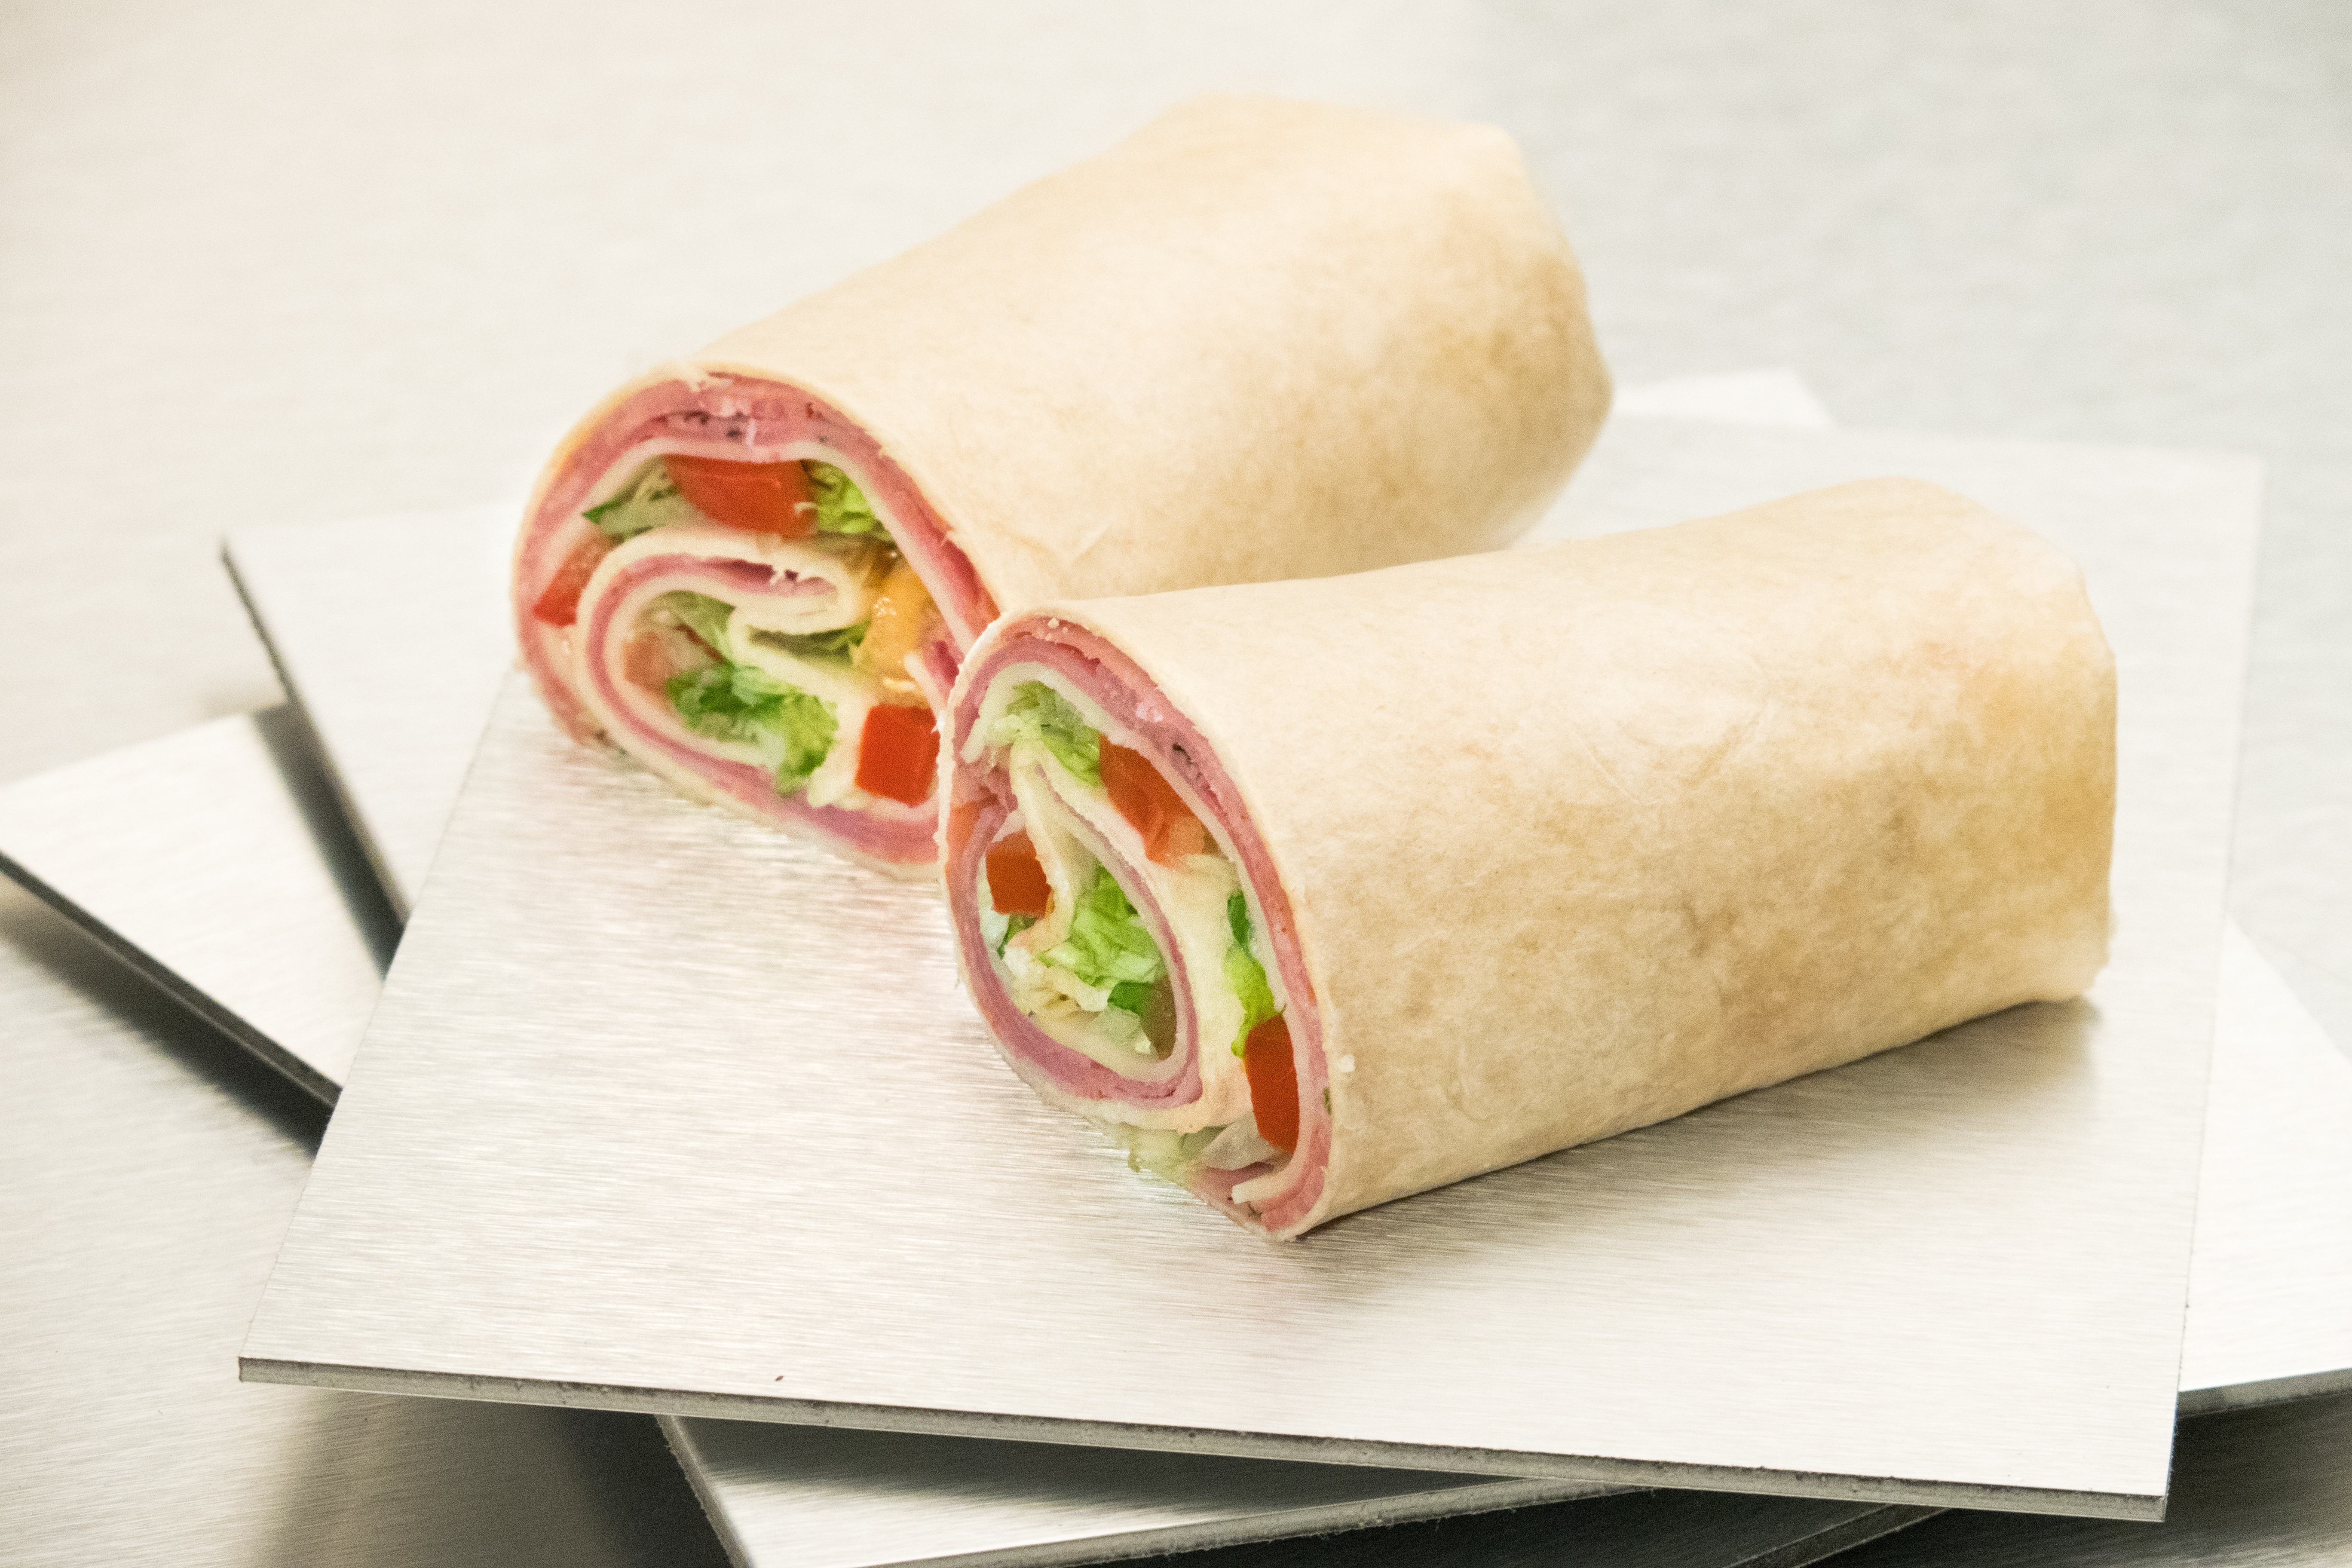 Our wrap selection